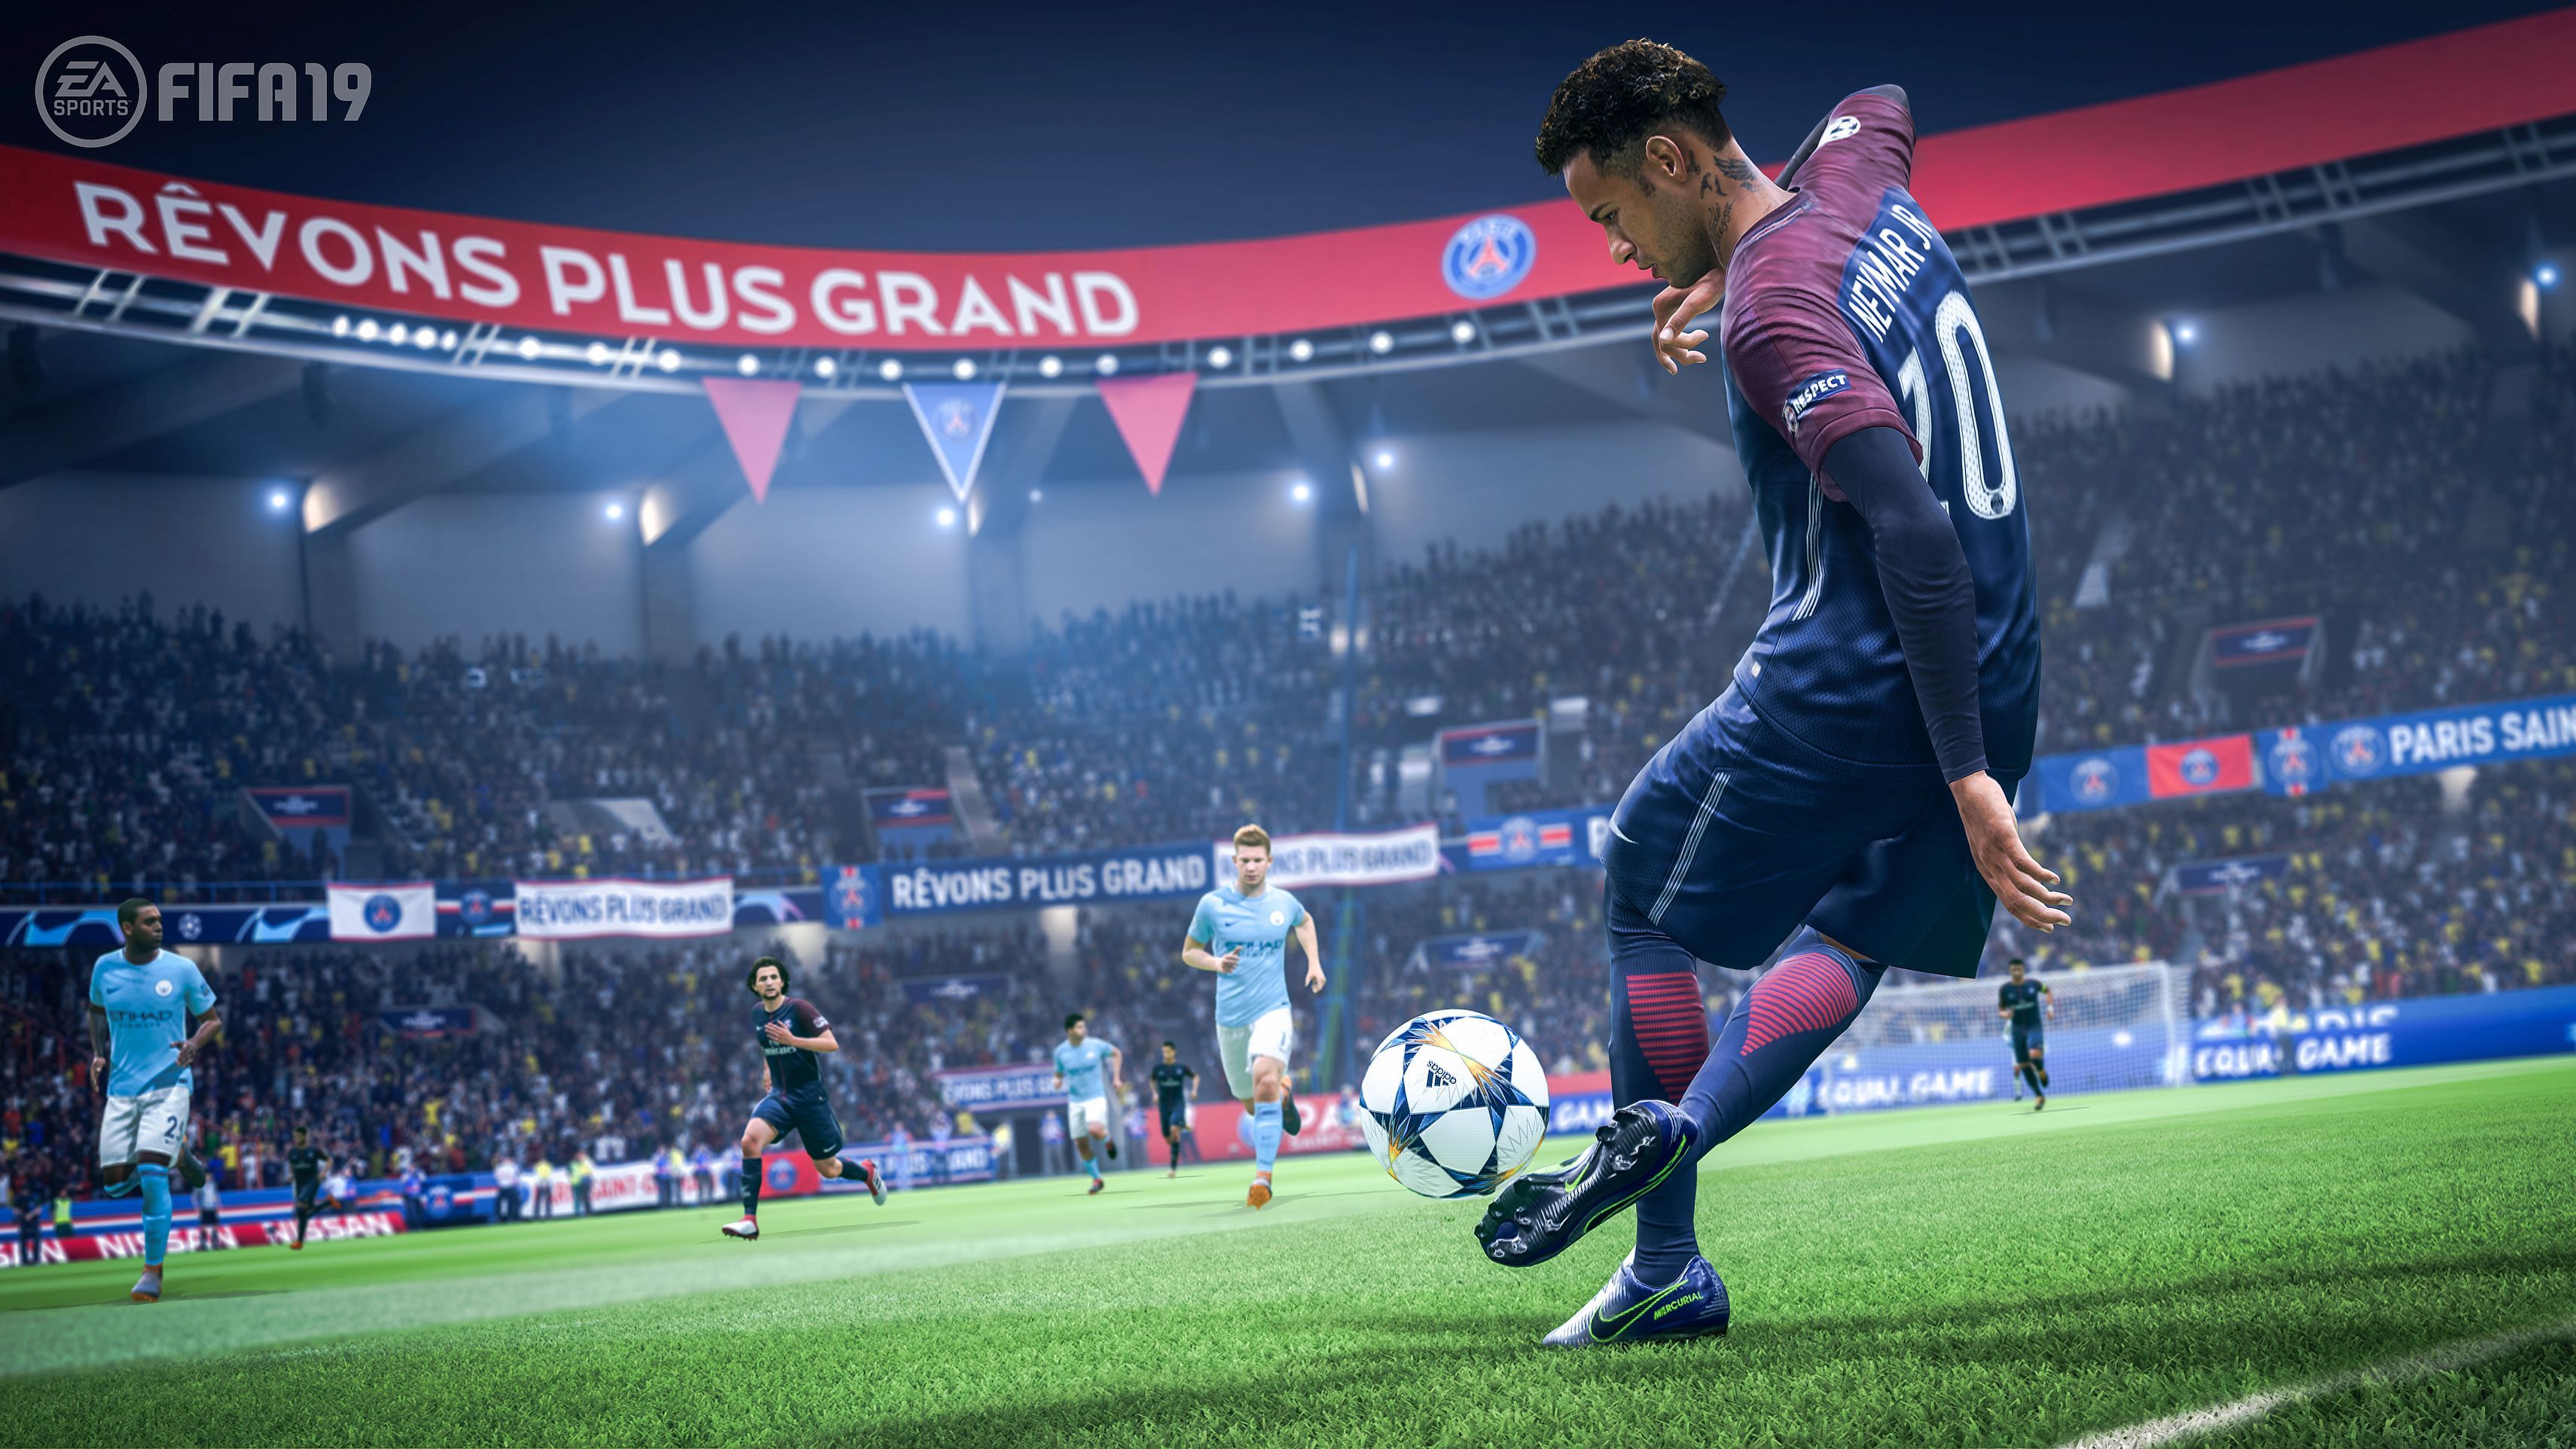 FIFA 19 adding no-rules and survival modes   The Star Online